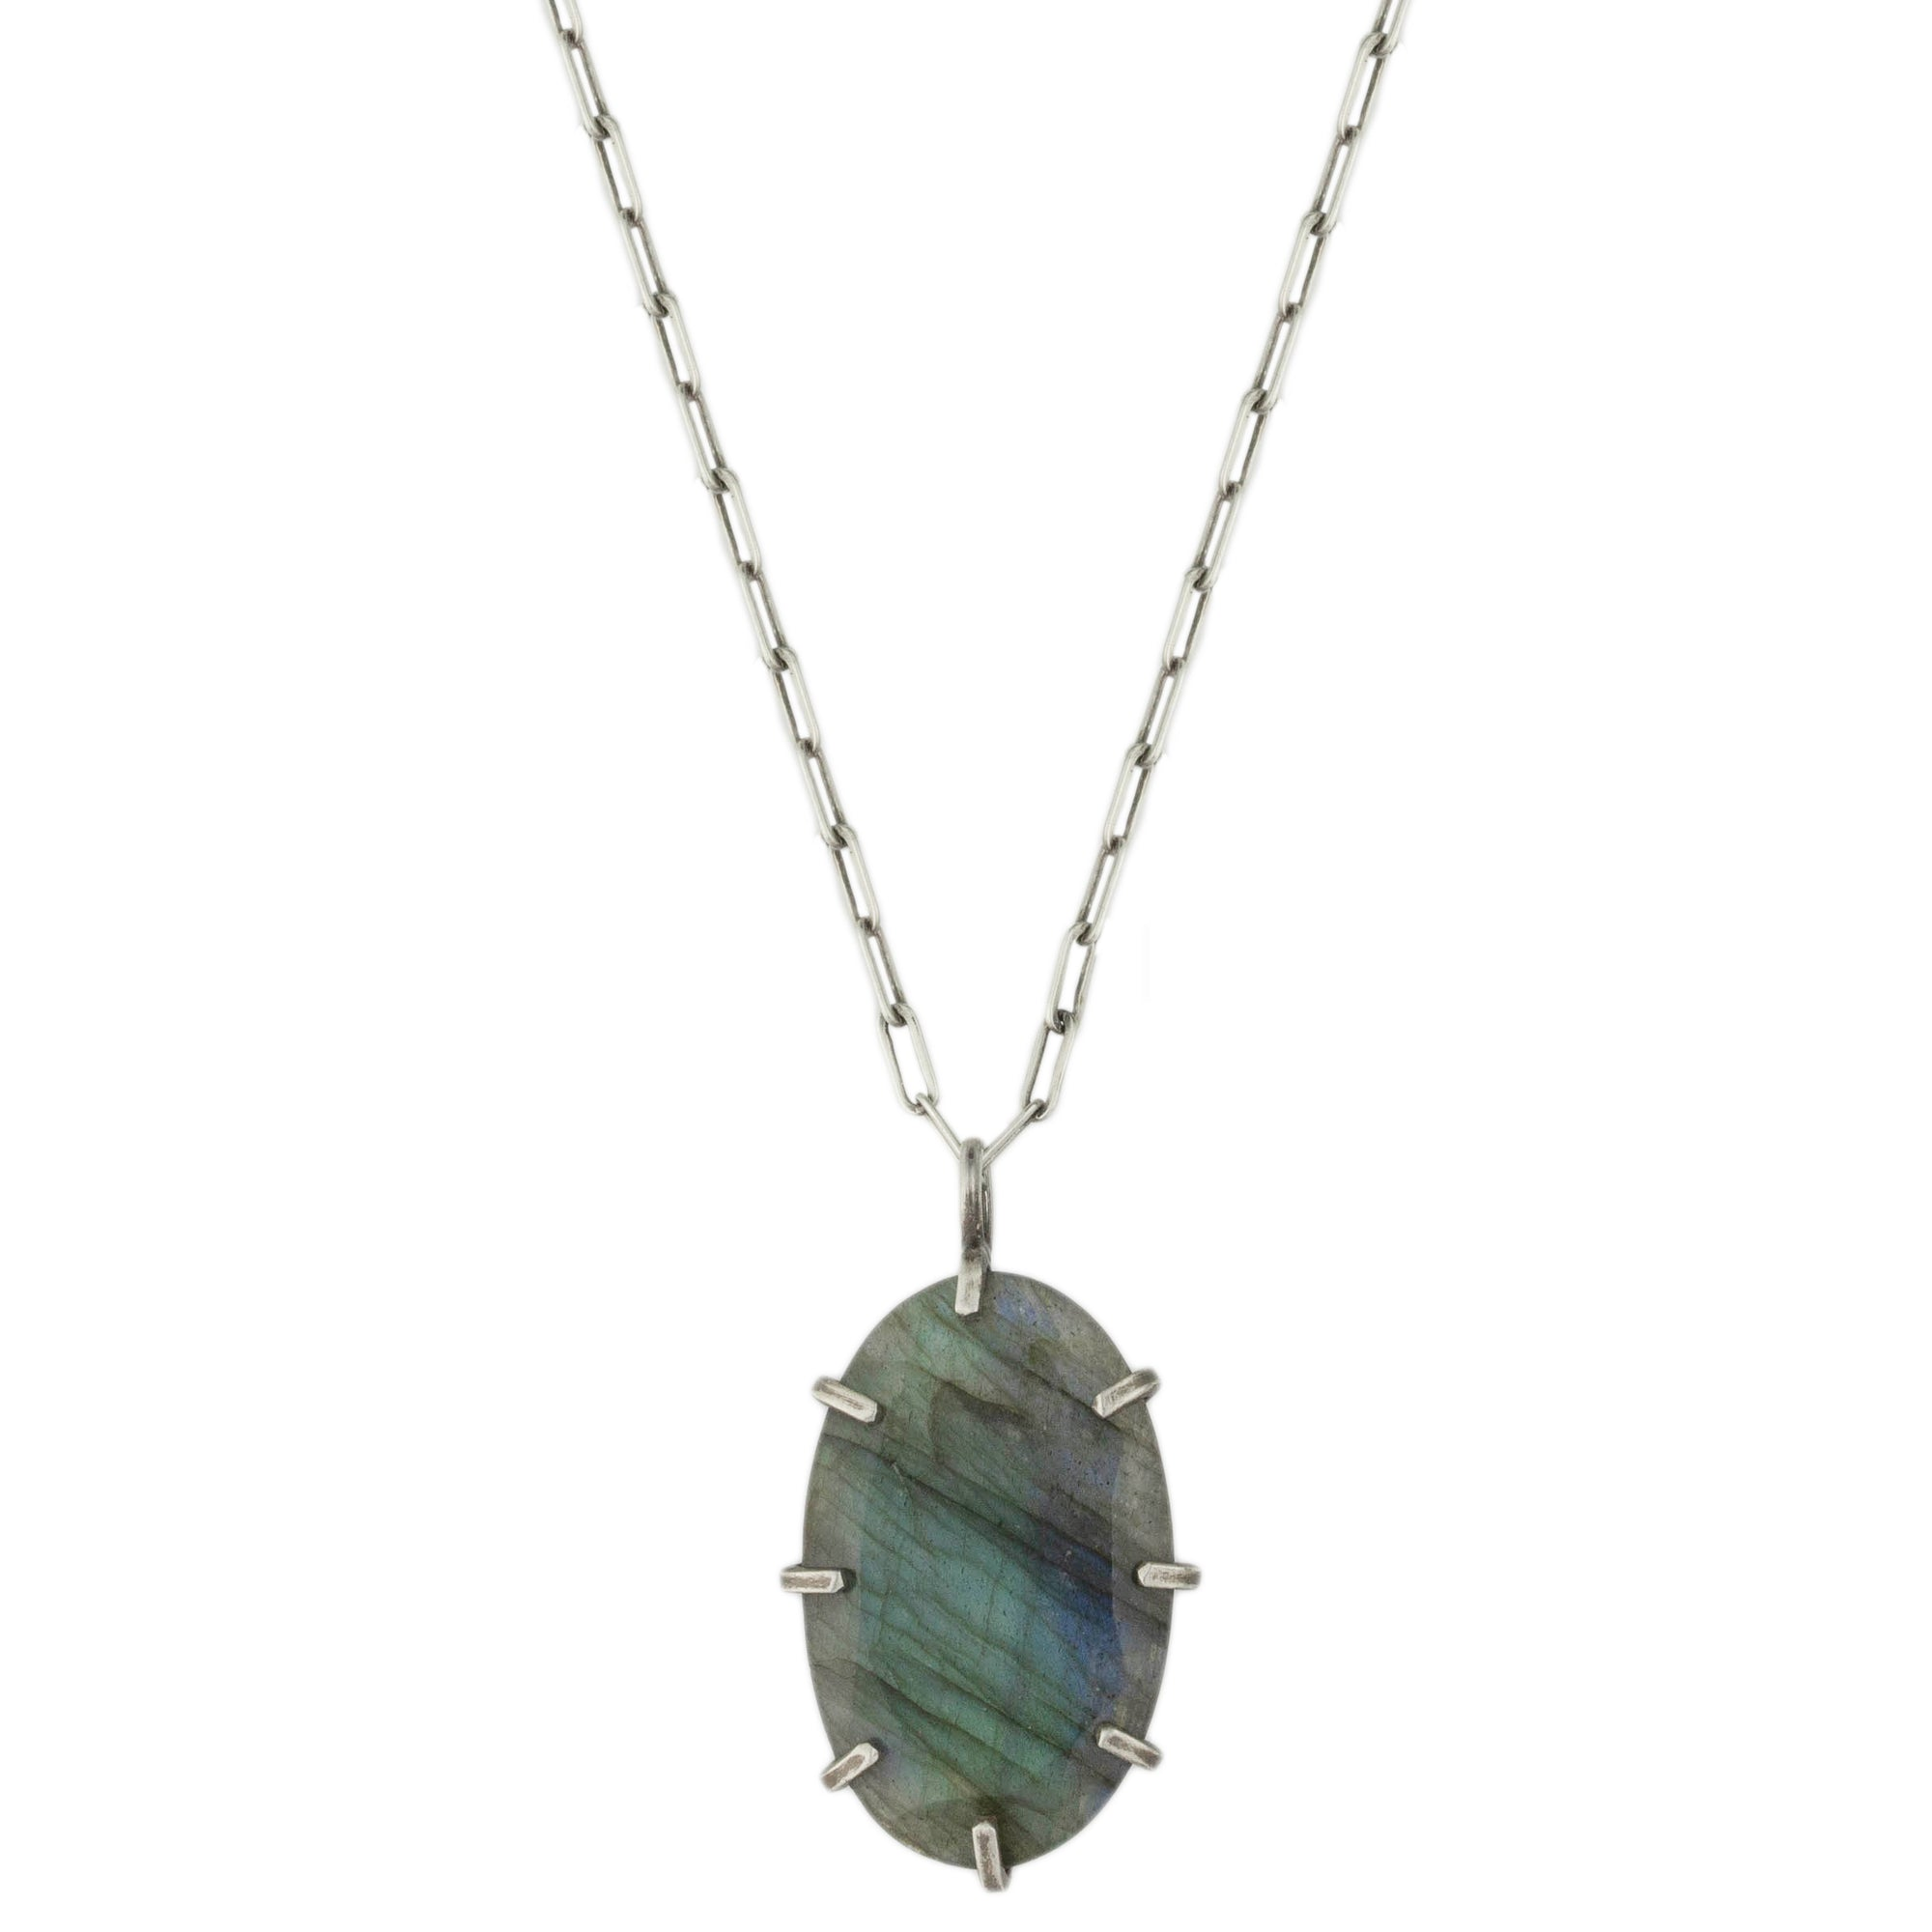 Labradorite Pronged Necklace